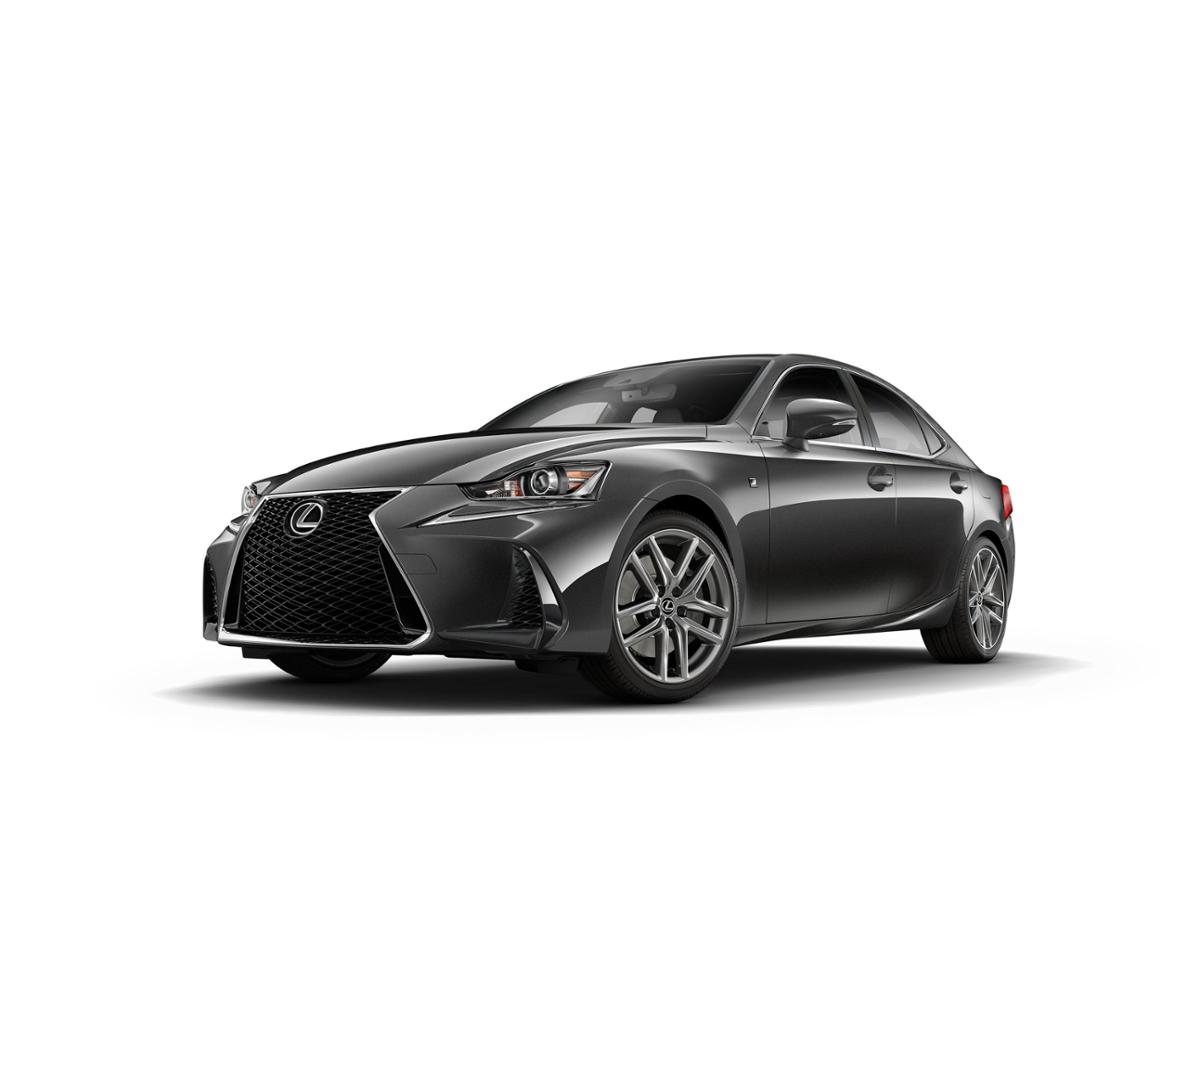 2019 Lexus IS 350 Vehicle Photo in Santa Monica, CA 90404